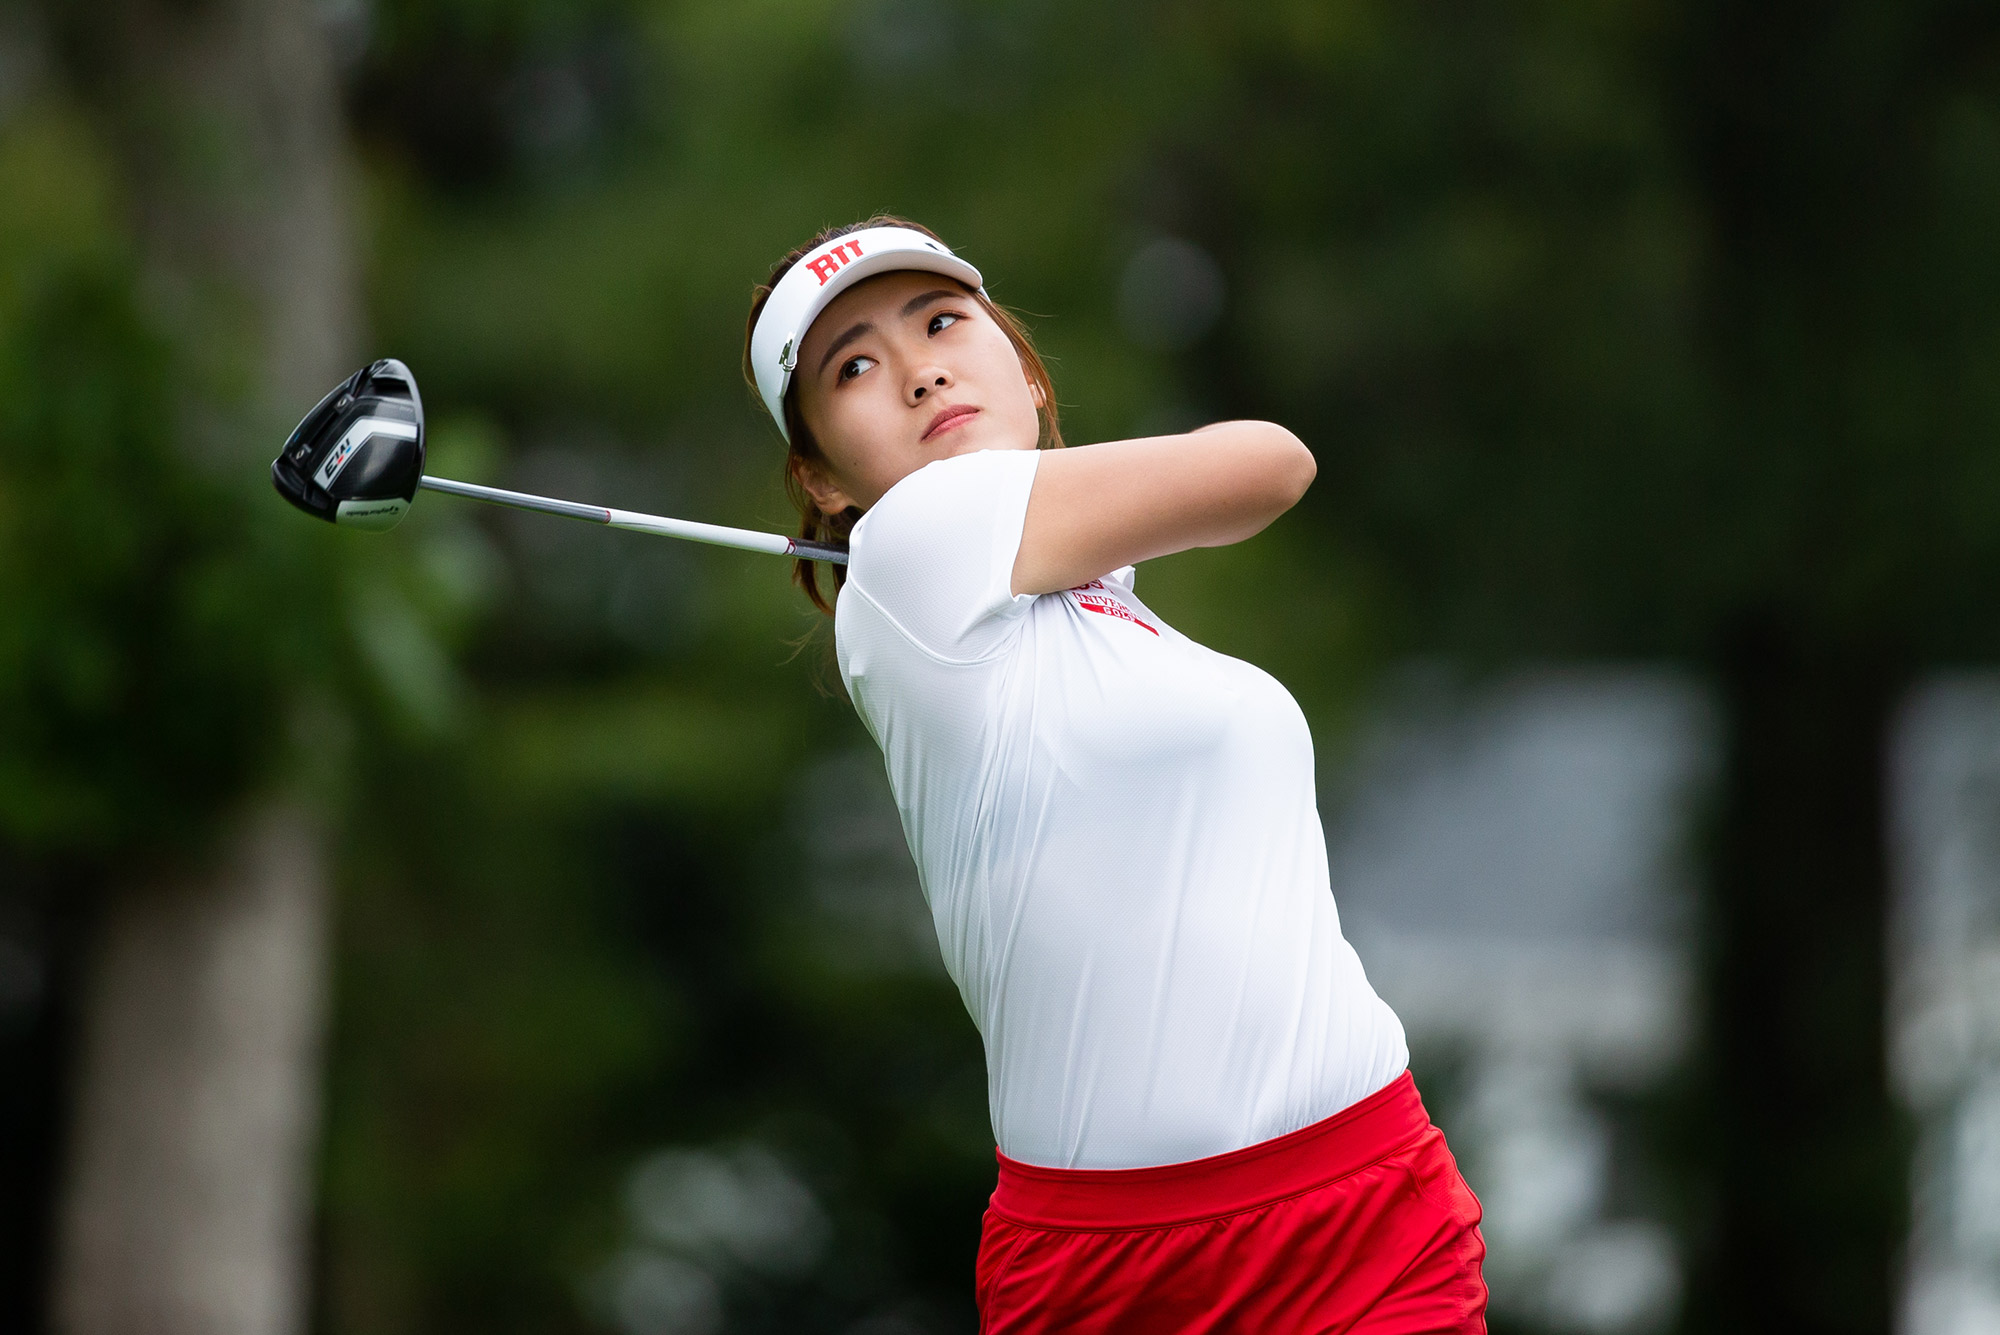 "Women's golf team member Zhangcheng ""Kristy"" Guo at the end of her golf swing. She wears a white shirt and hat."